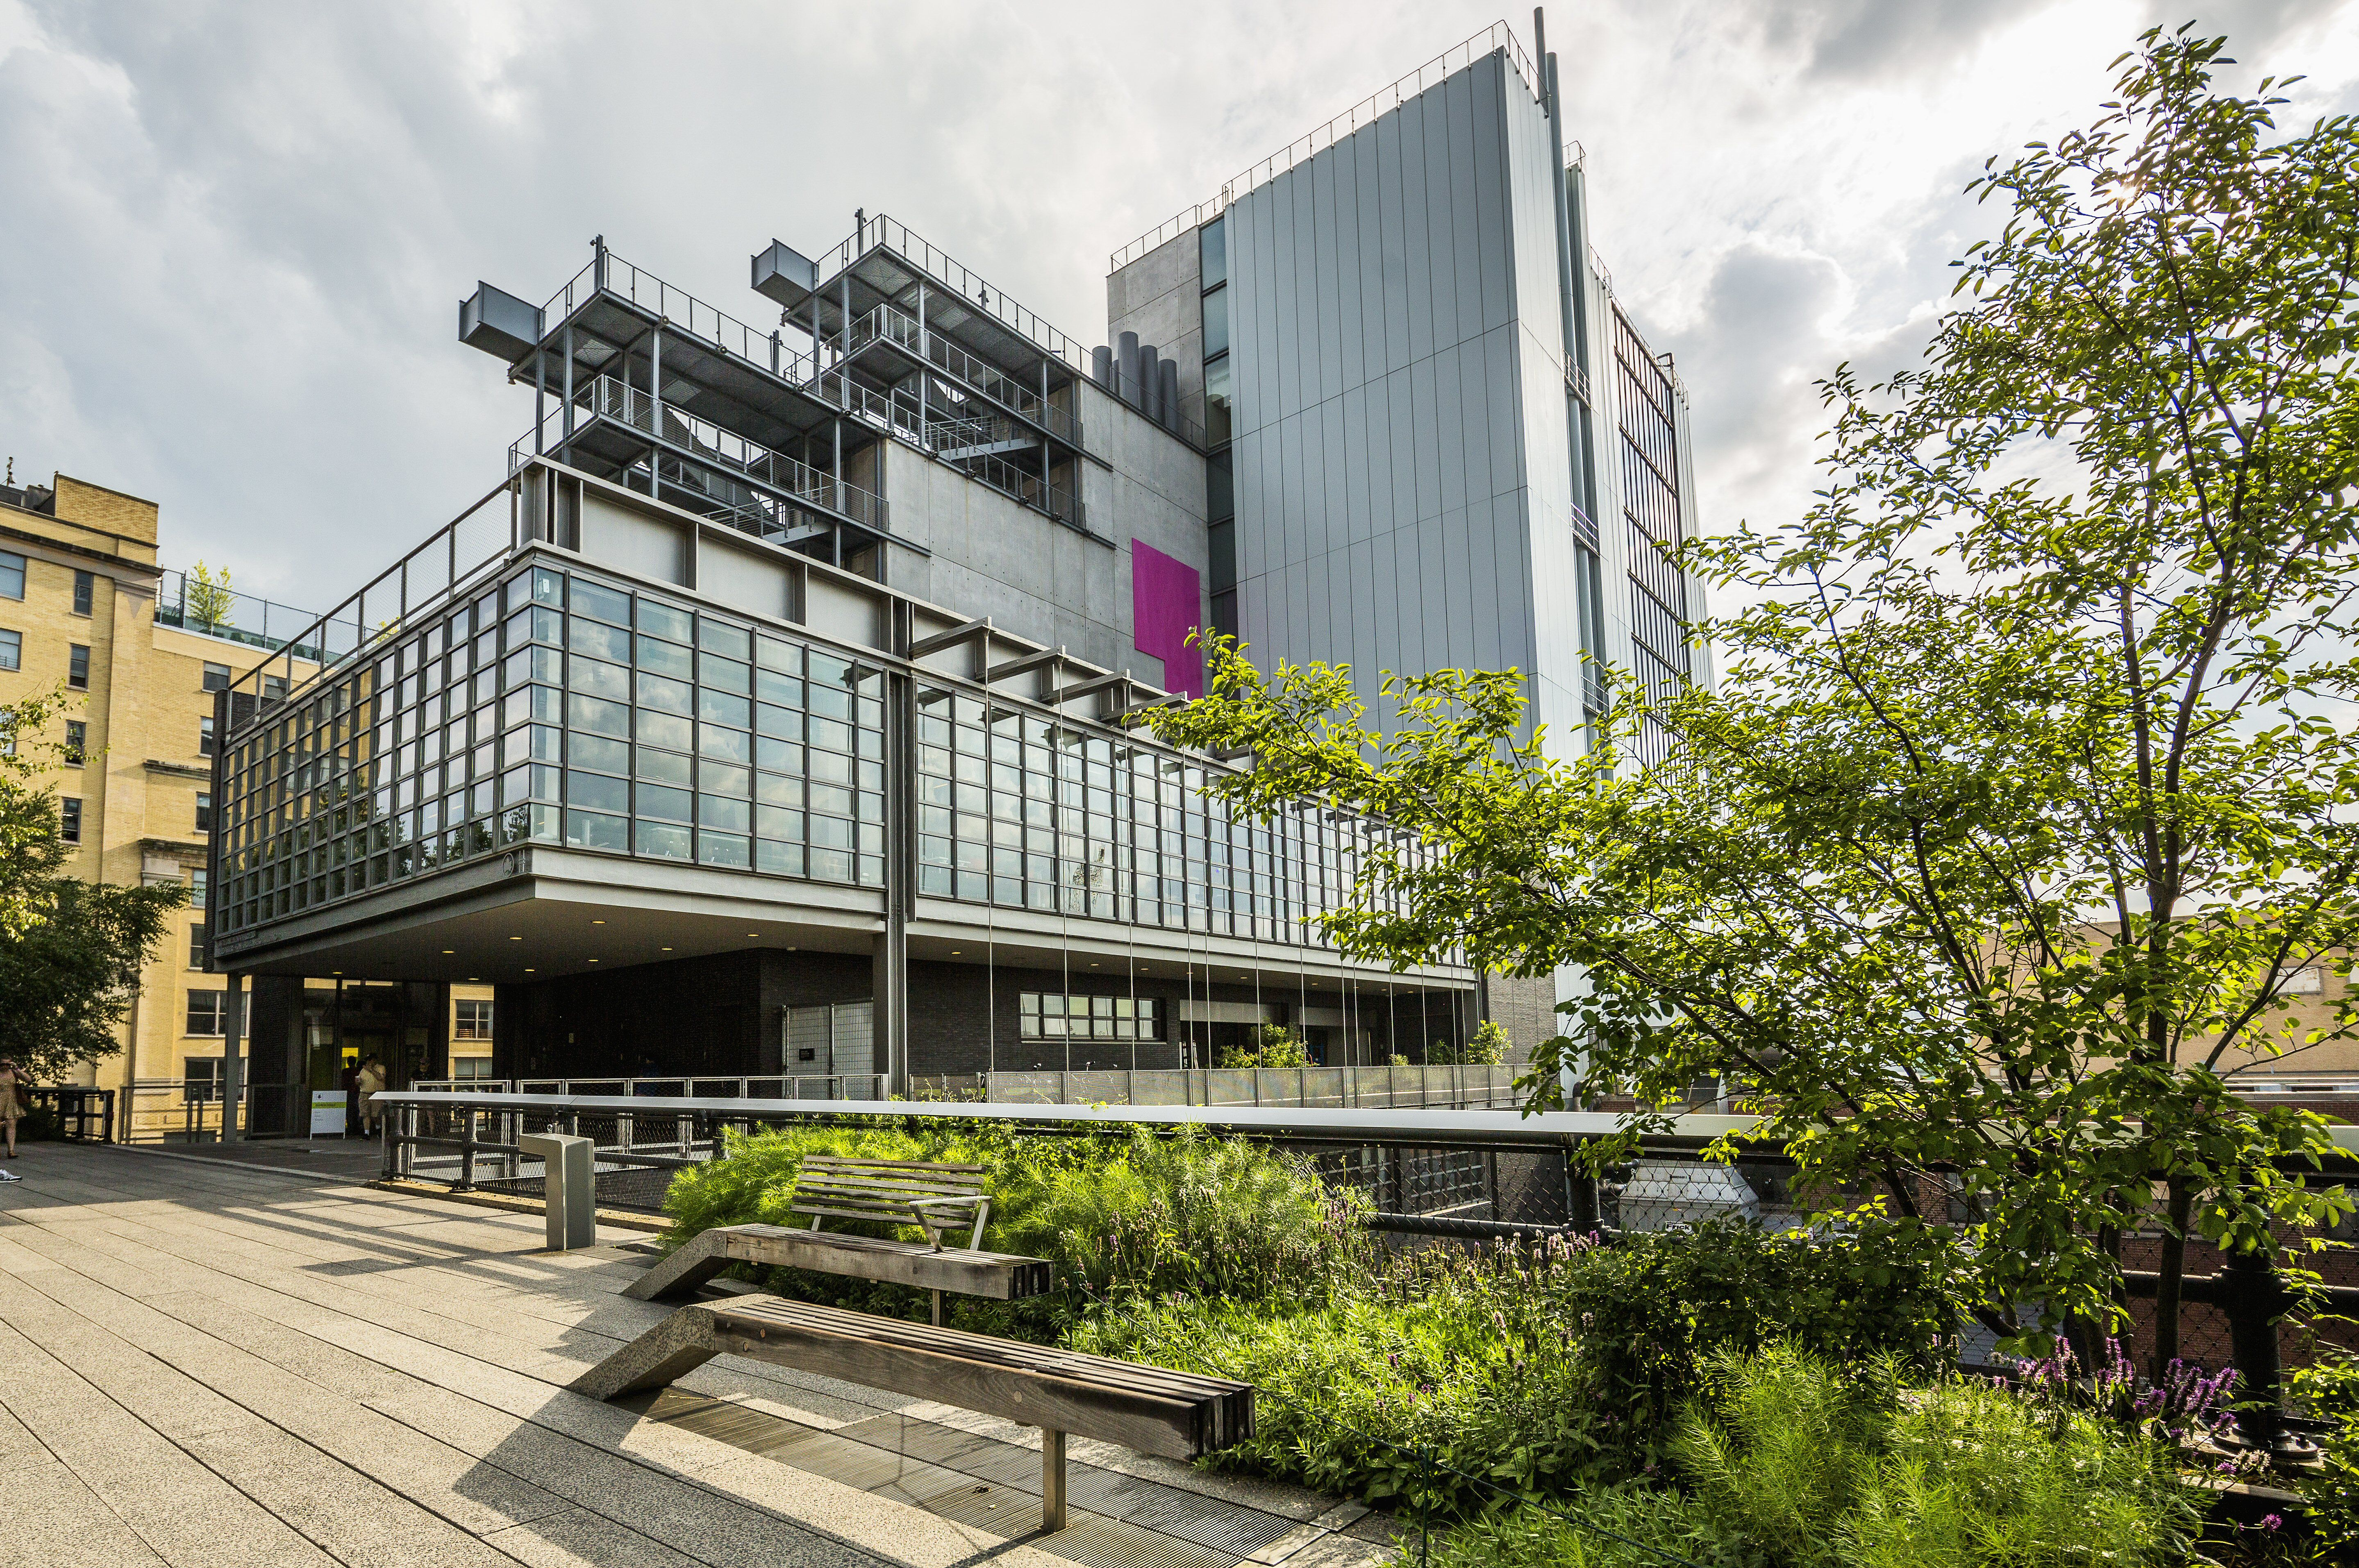 Manhattan, Meatpacking District, High Line Elevated Park and Whitney Museum of American Art